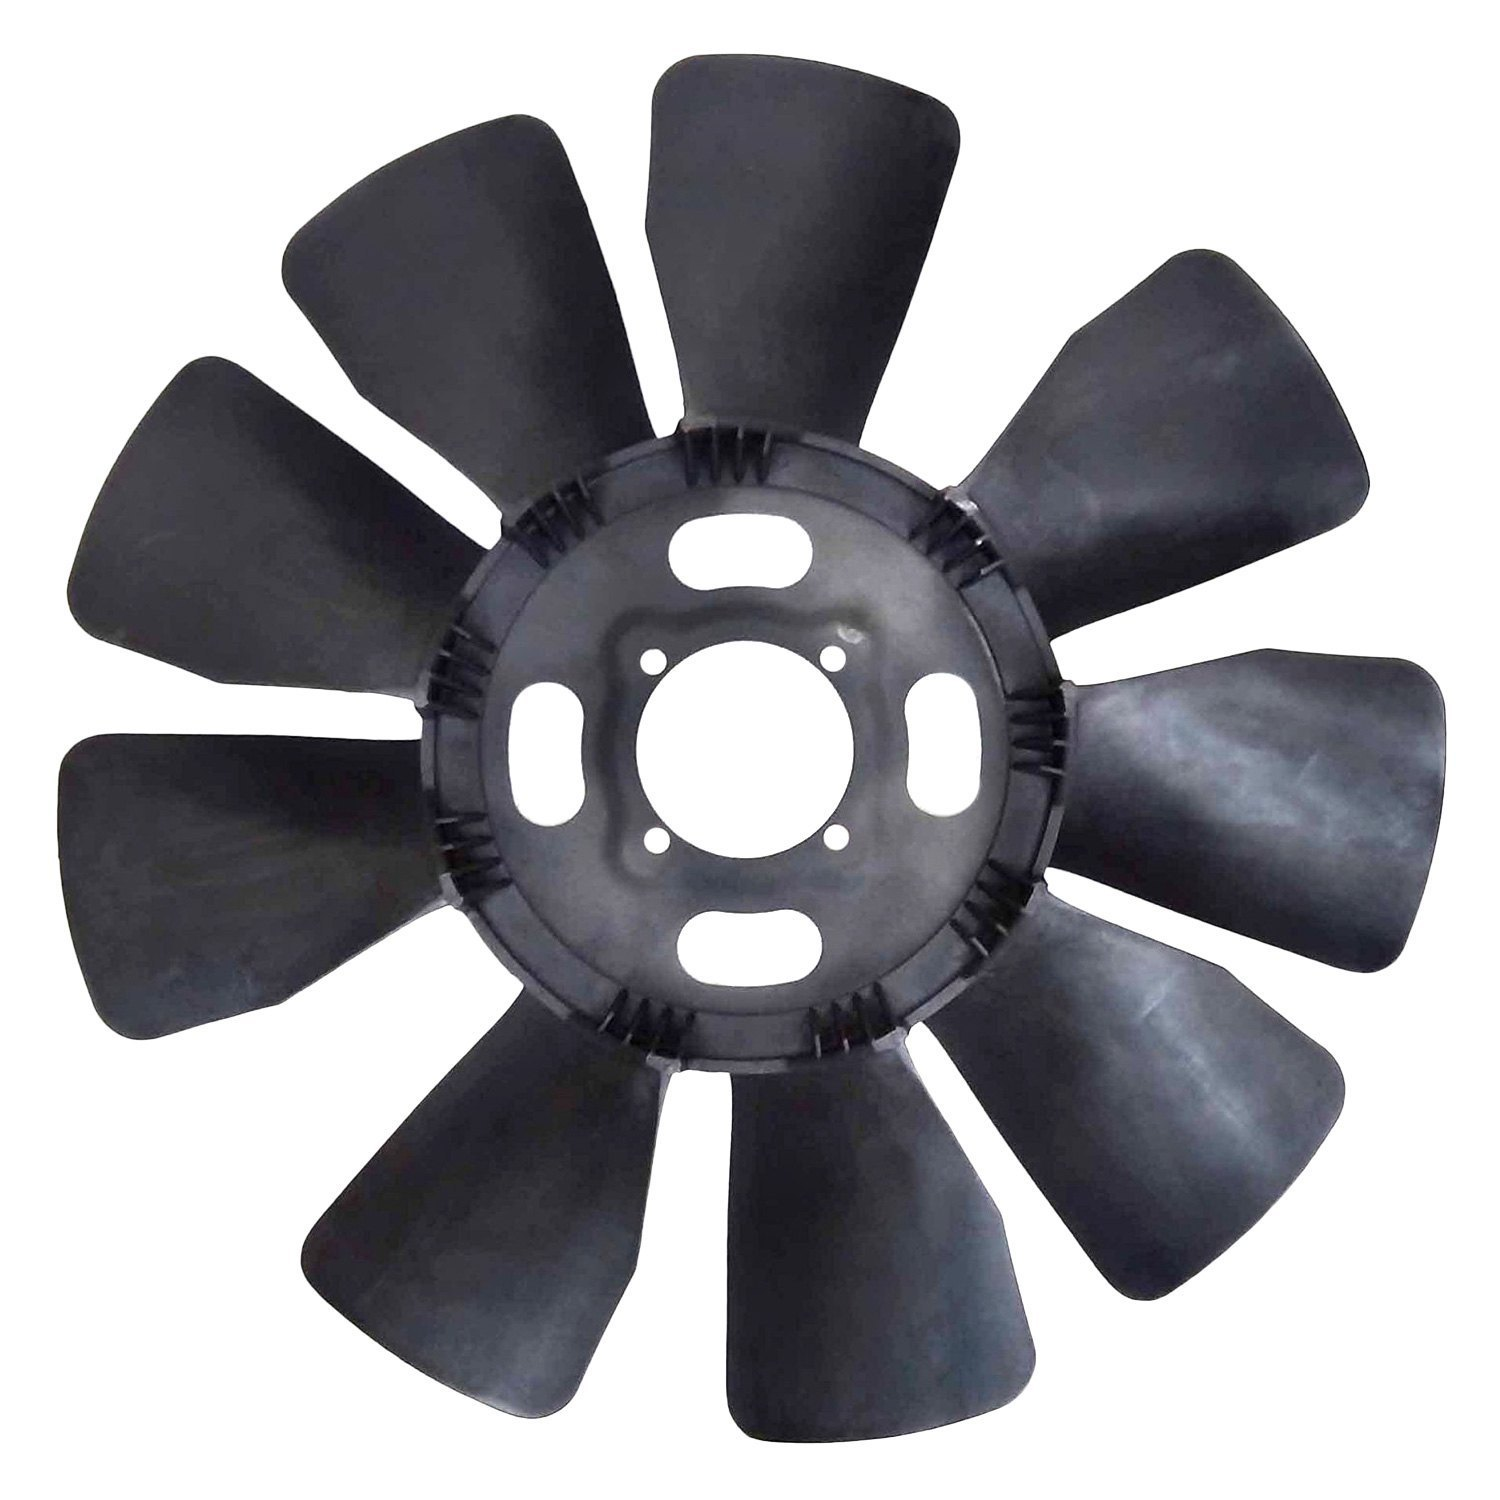 Depo® 33555072400 Engine Cooling Fan Blade #5B6070